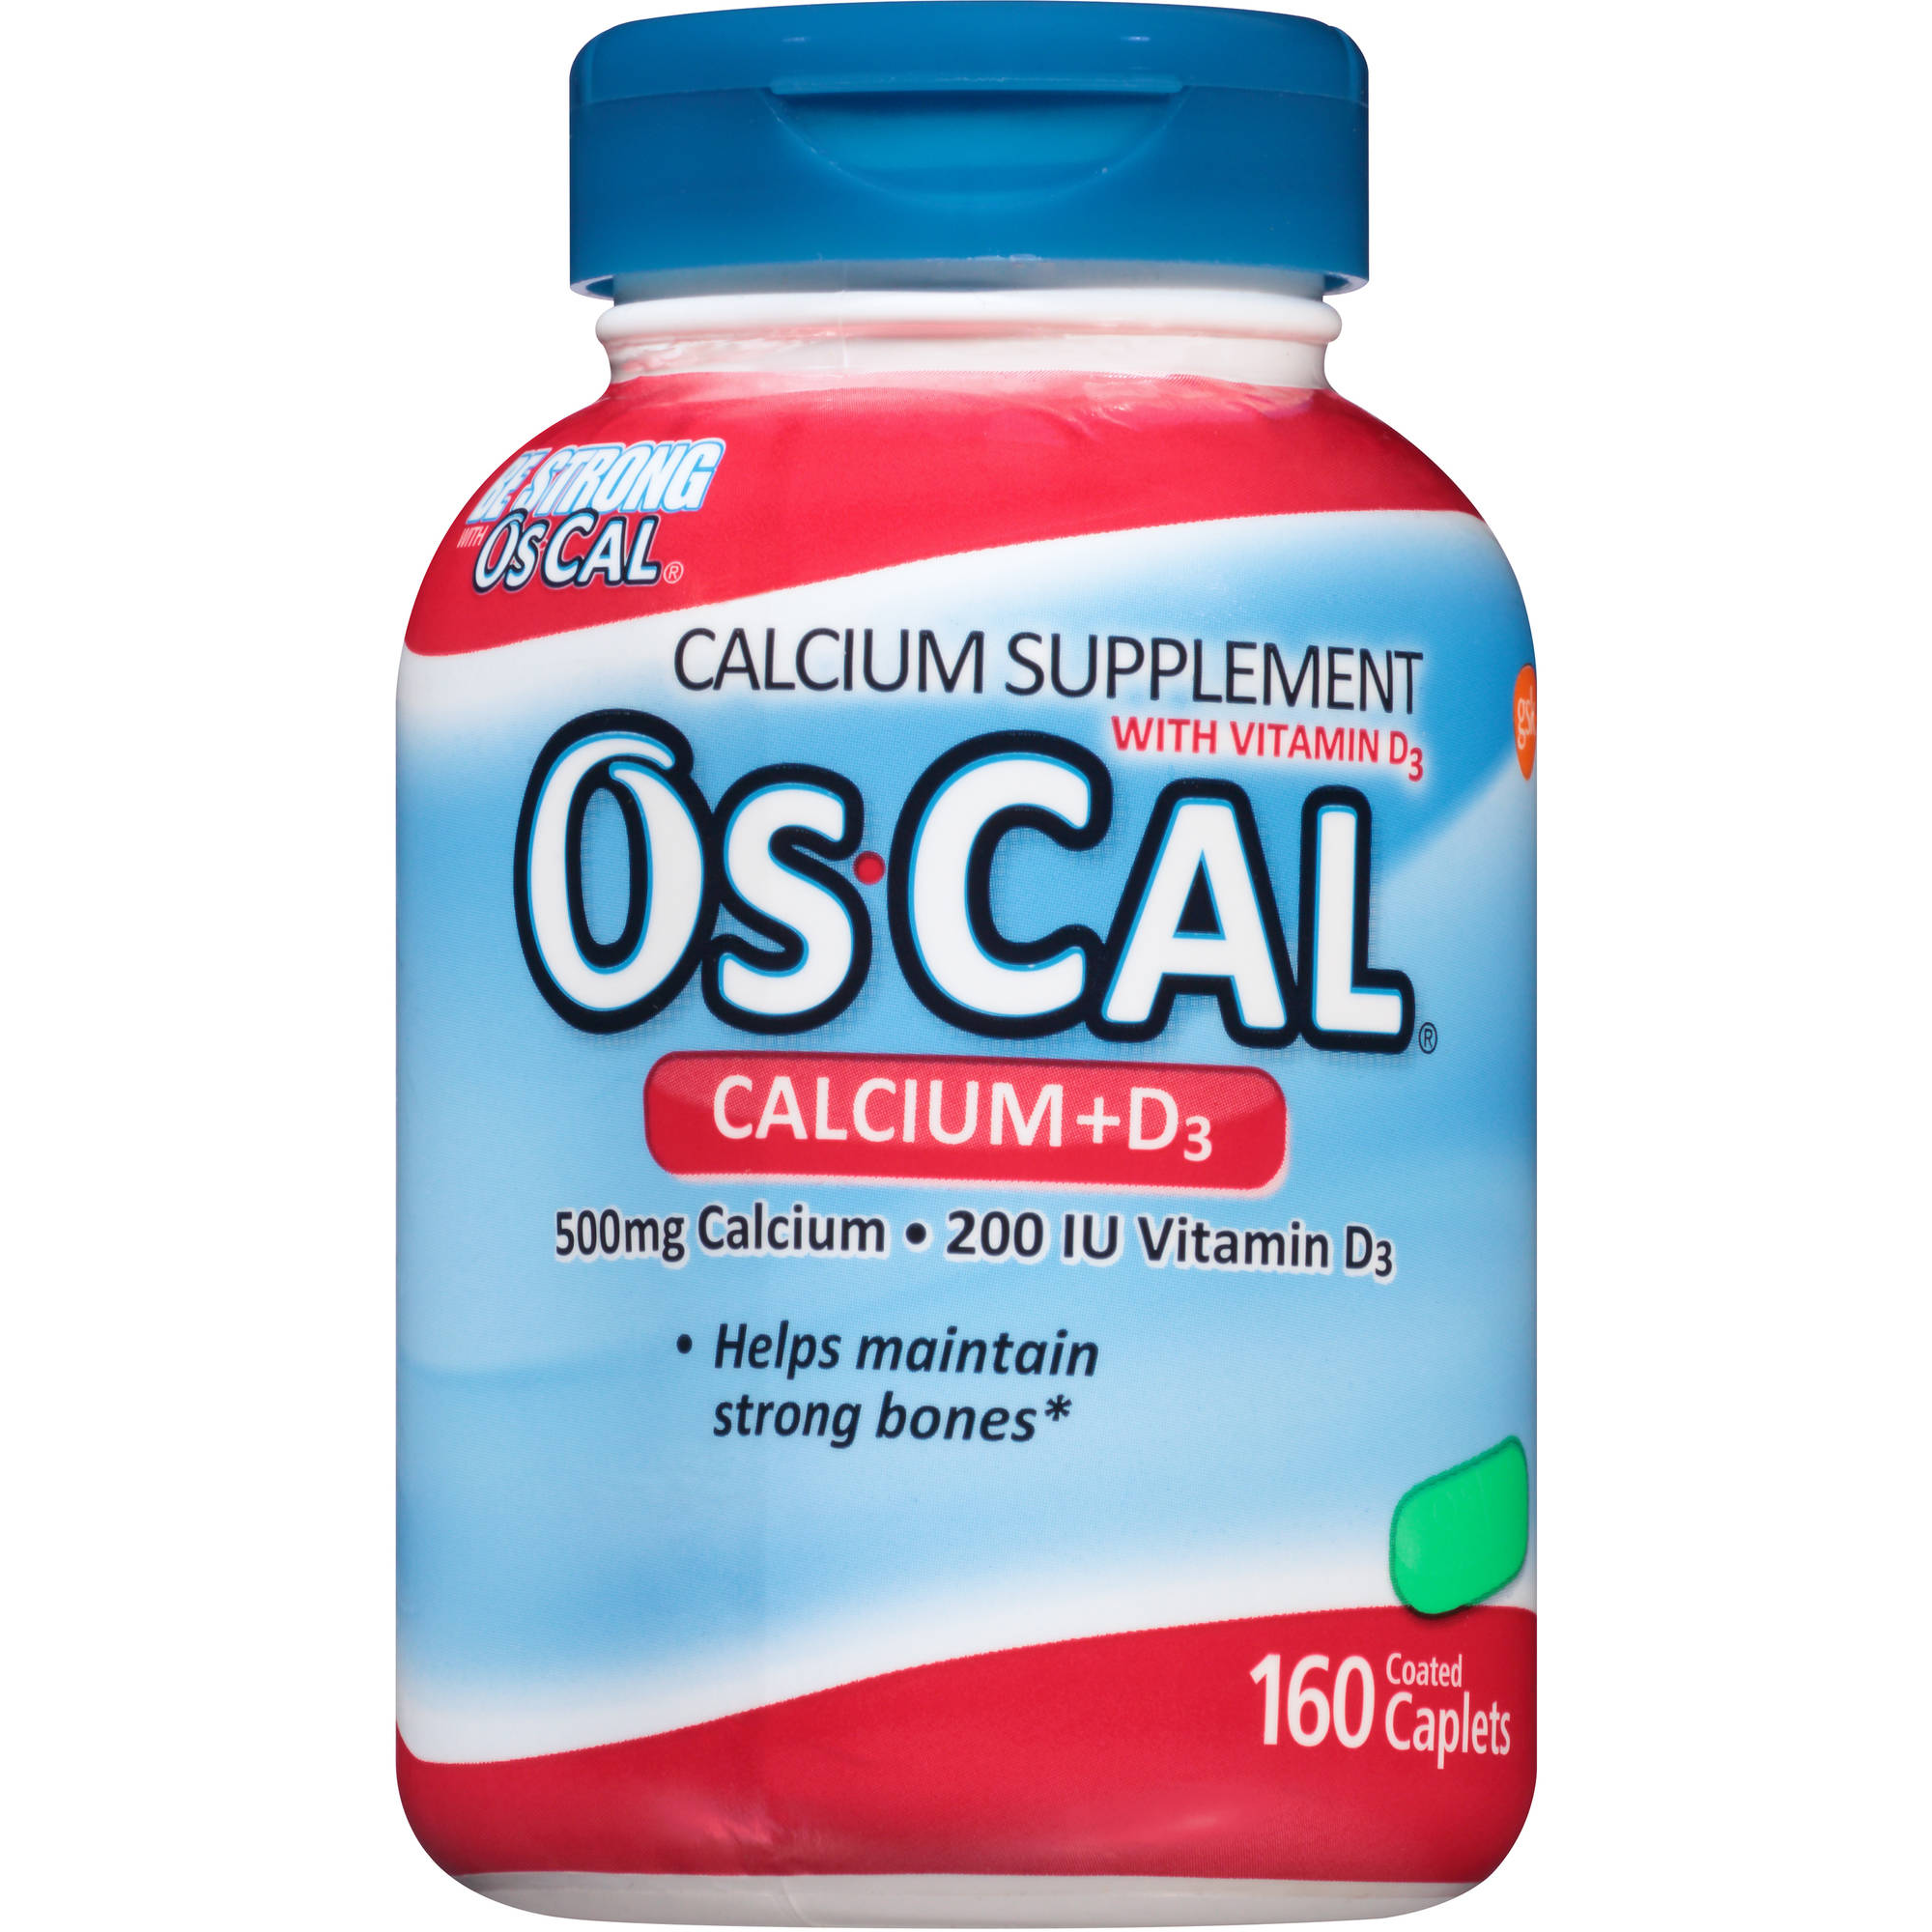 Os-Cal Calcium And Vitamin D3, Calcium Supplements, Coated Caplets, 160 Count